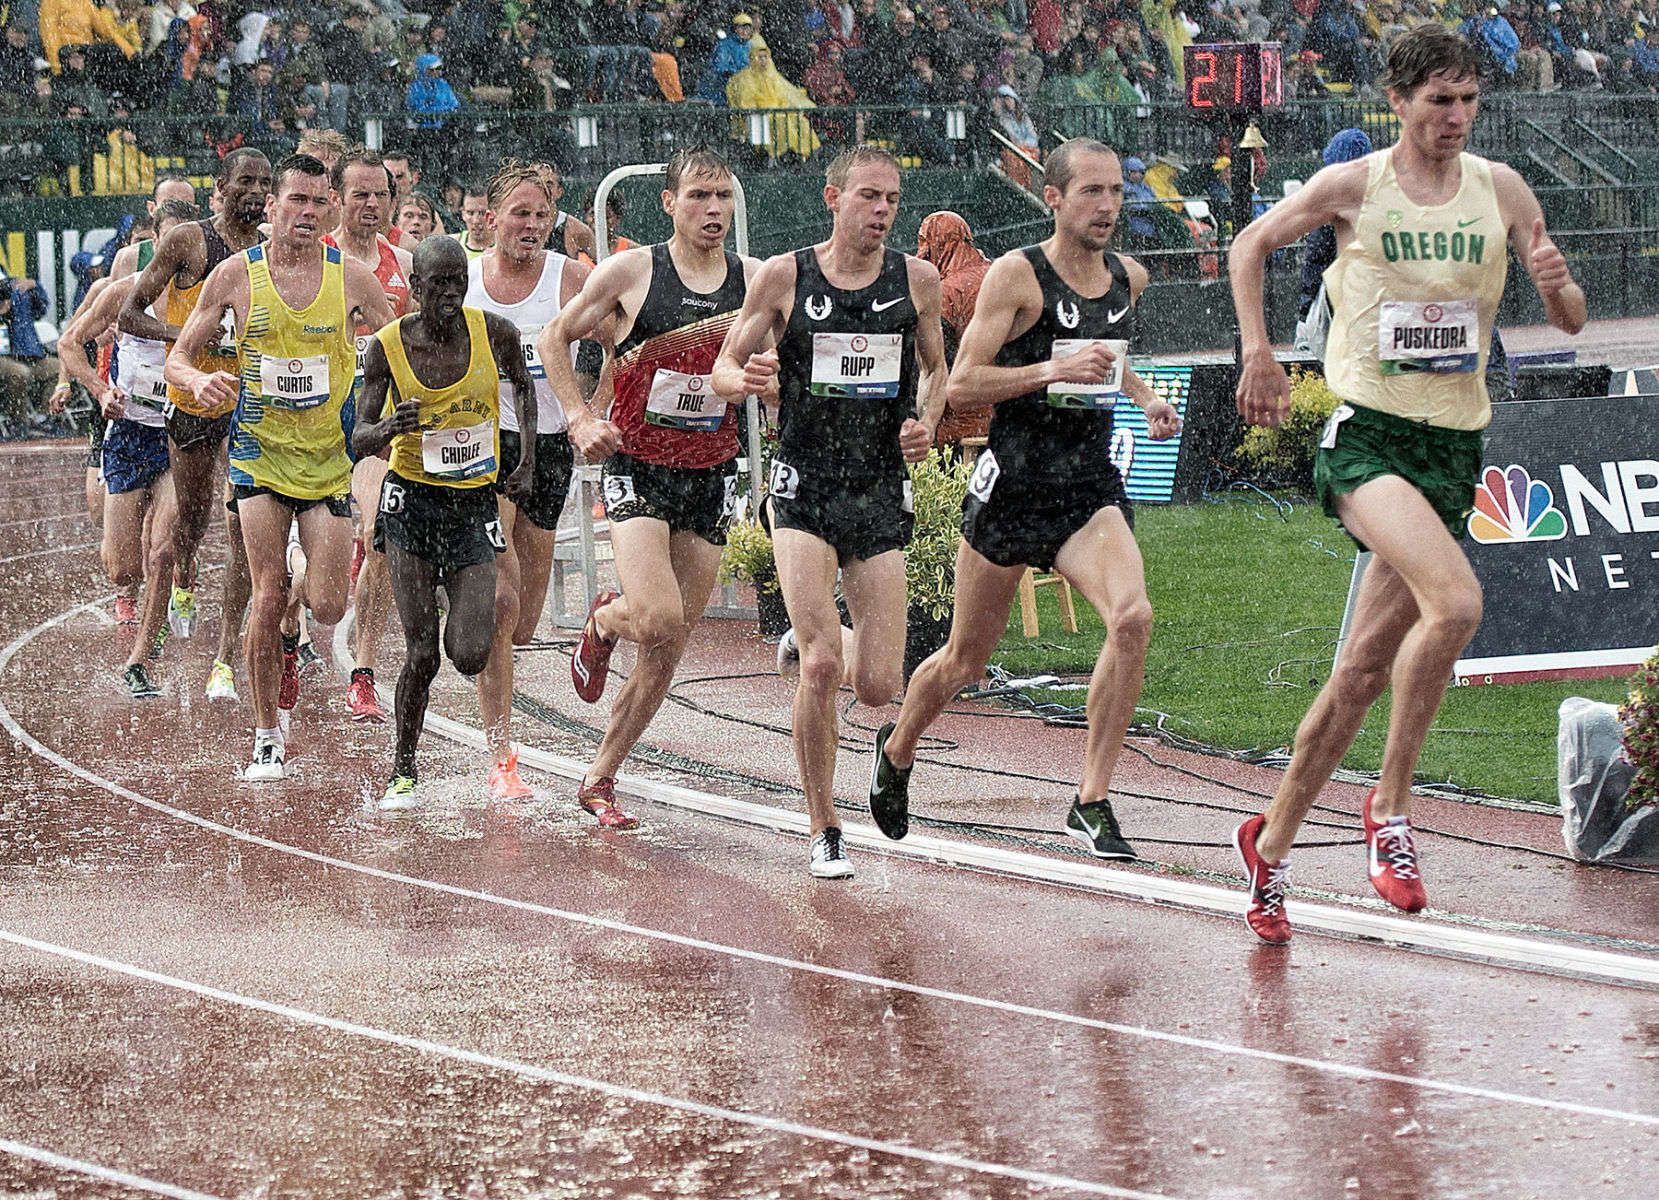 1ustrials2012_galen_rupp_rain_10000_meters_track_and_field_image_jeff_cohen_photography_lb.jpg